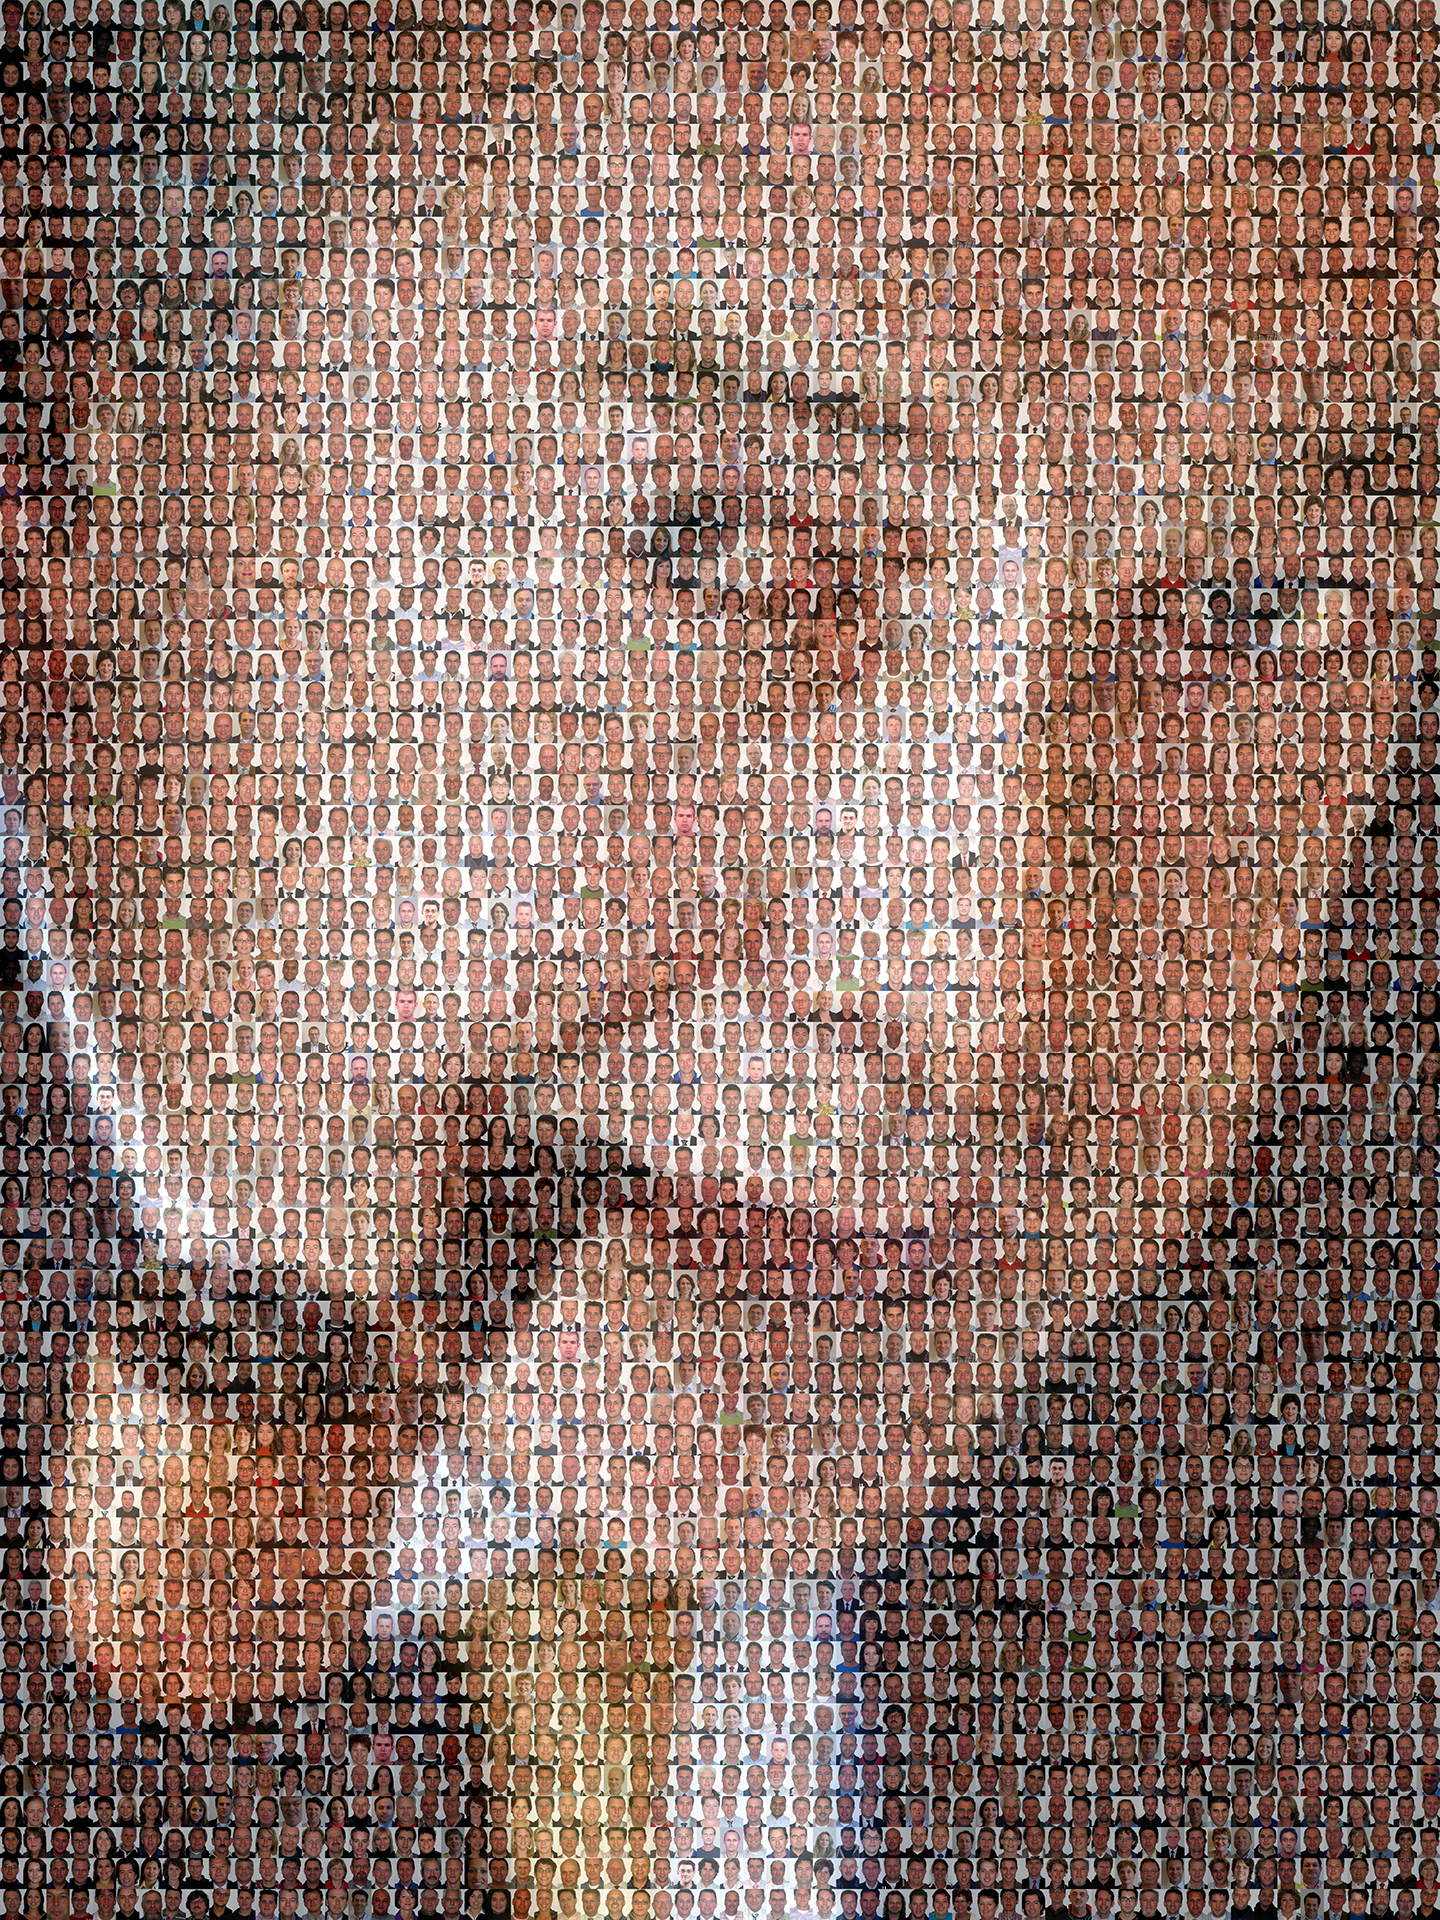 photo mosaic created using 639 business photos